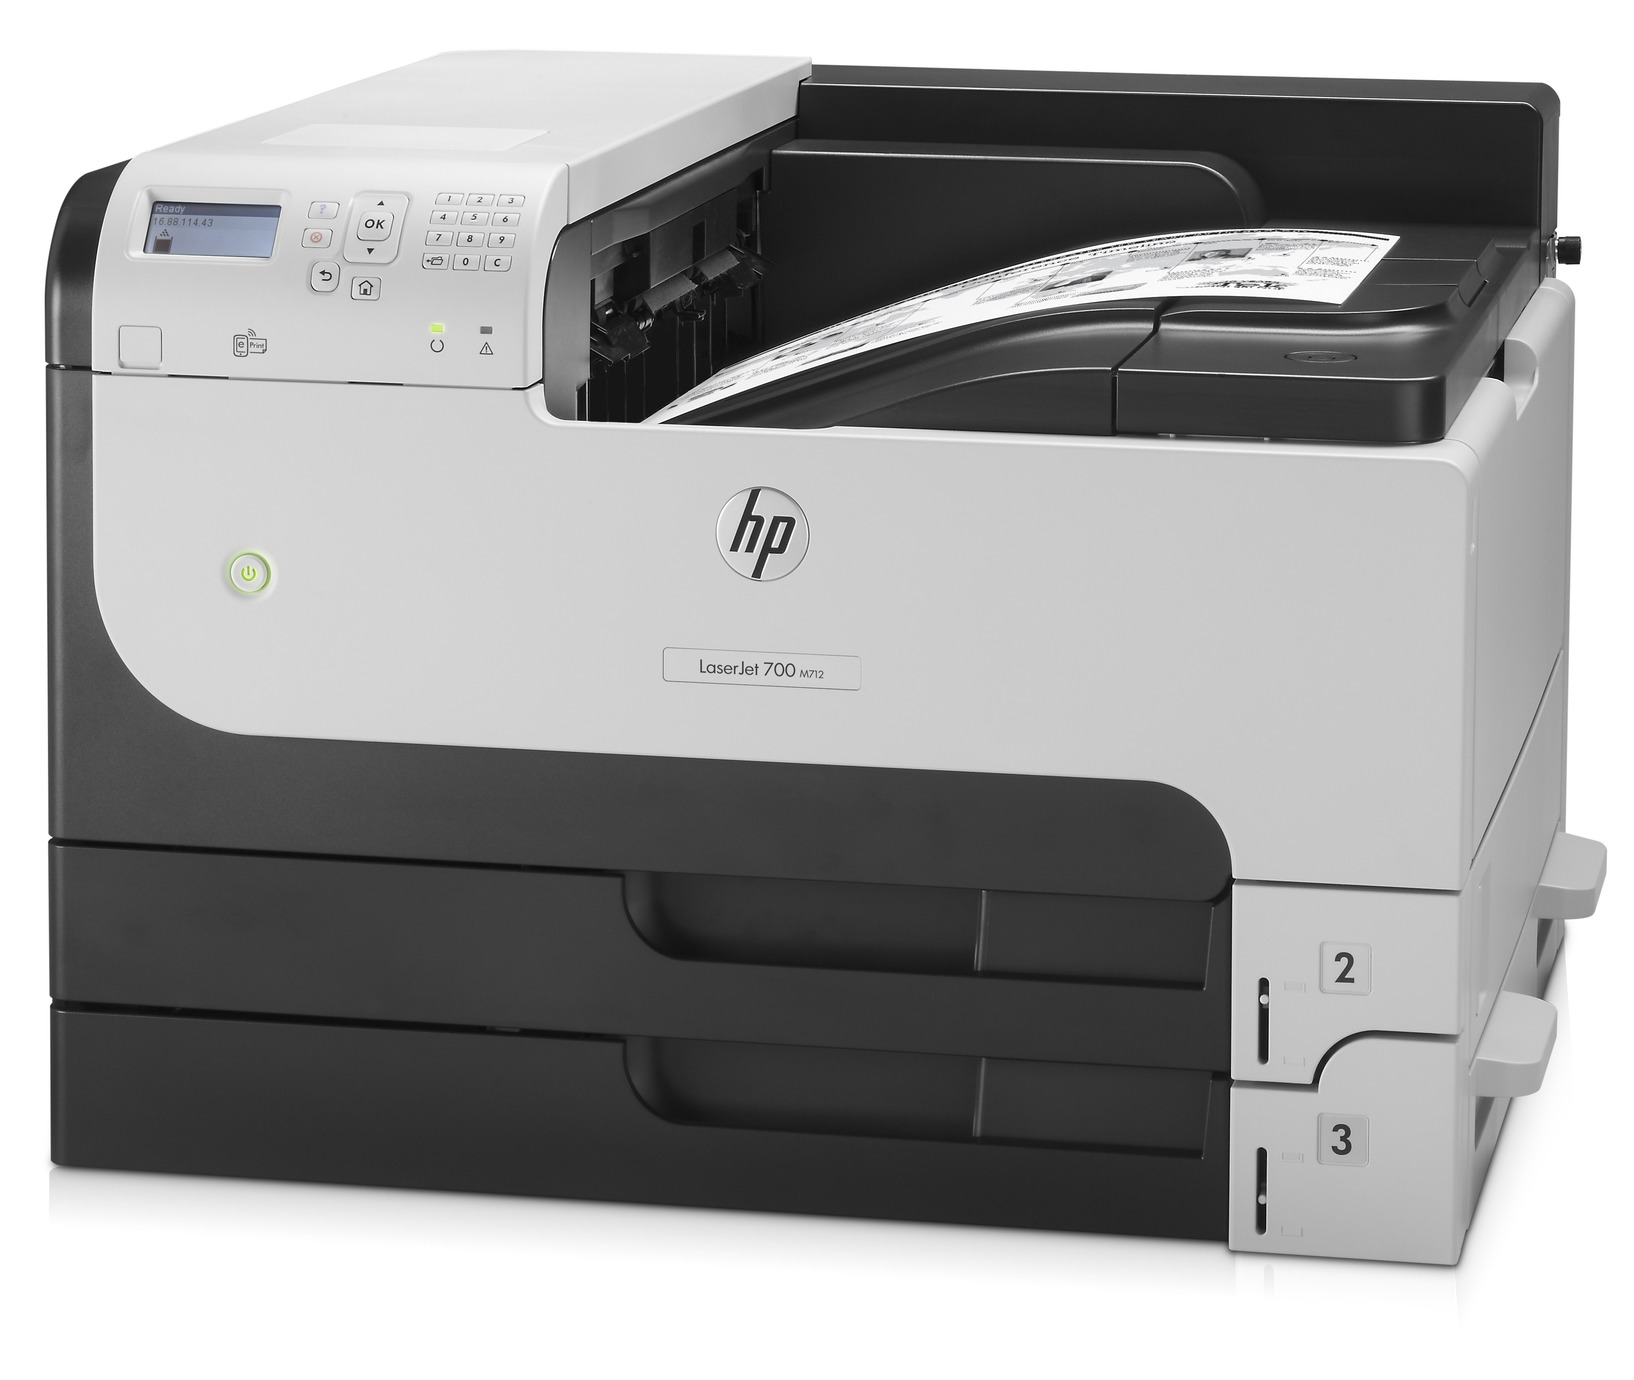 Ricoh Laser Printer Repair